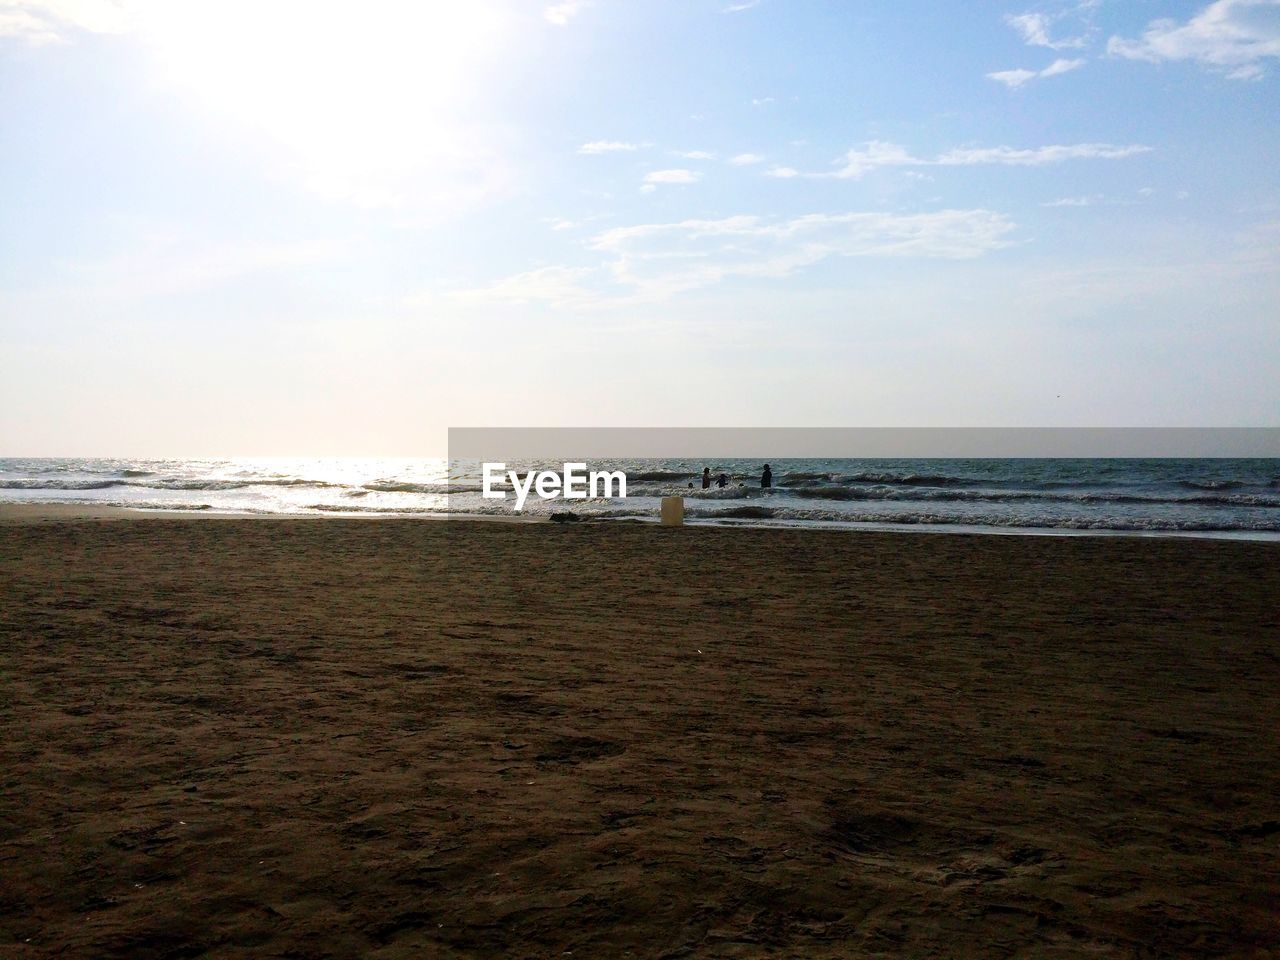 sea, beach, water, sand, nature, horizon over water, beauty in nature, shore, scenics, sky, tranquility, tranquil scene, no people, wave, outdoors, day